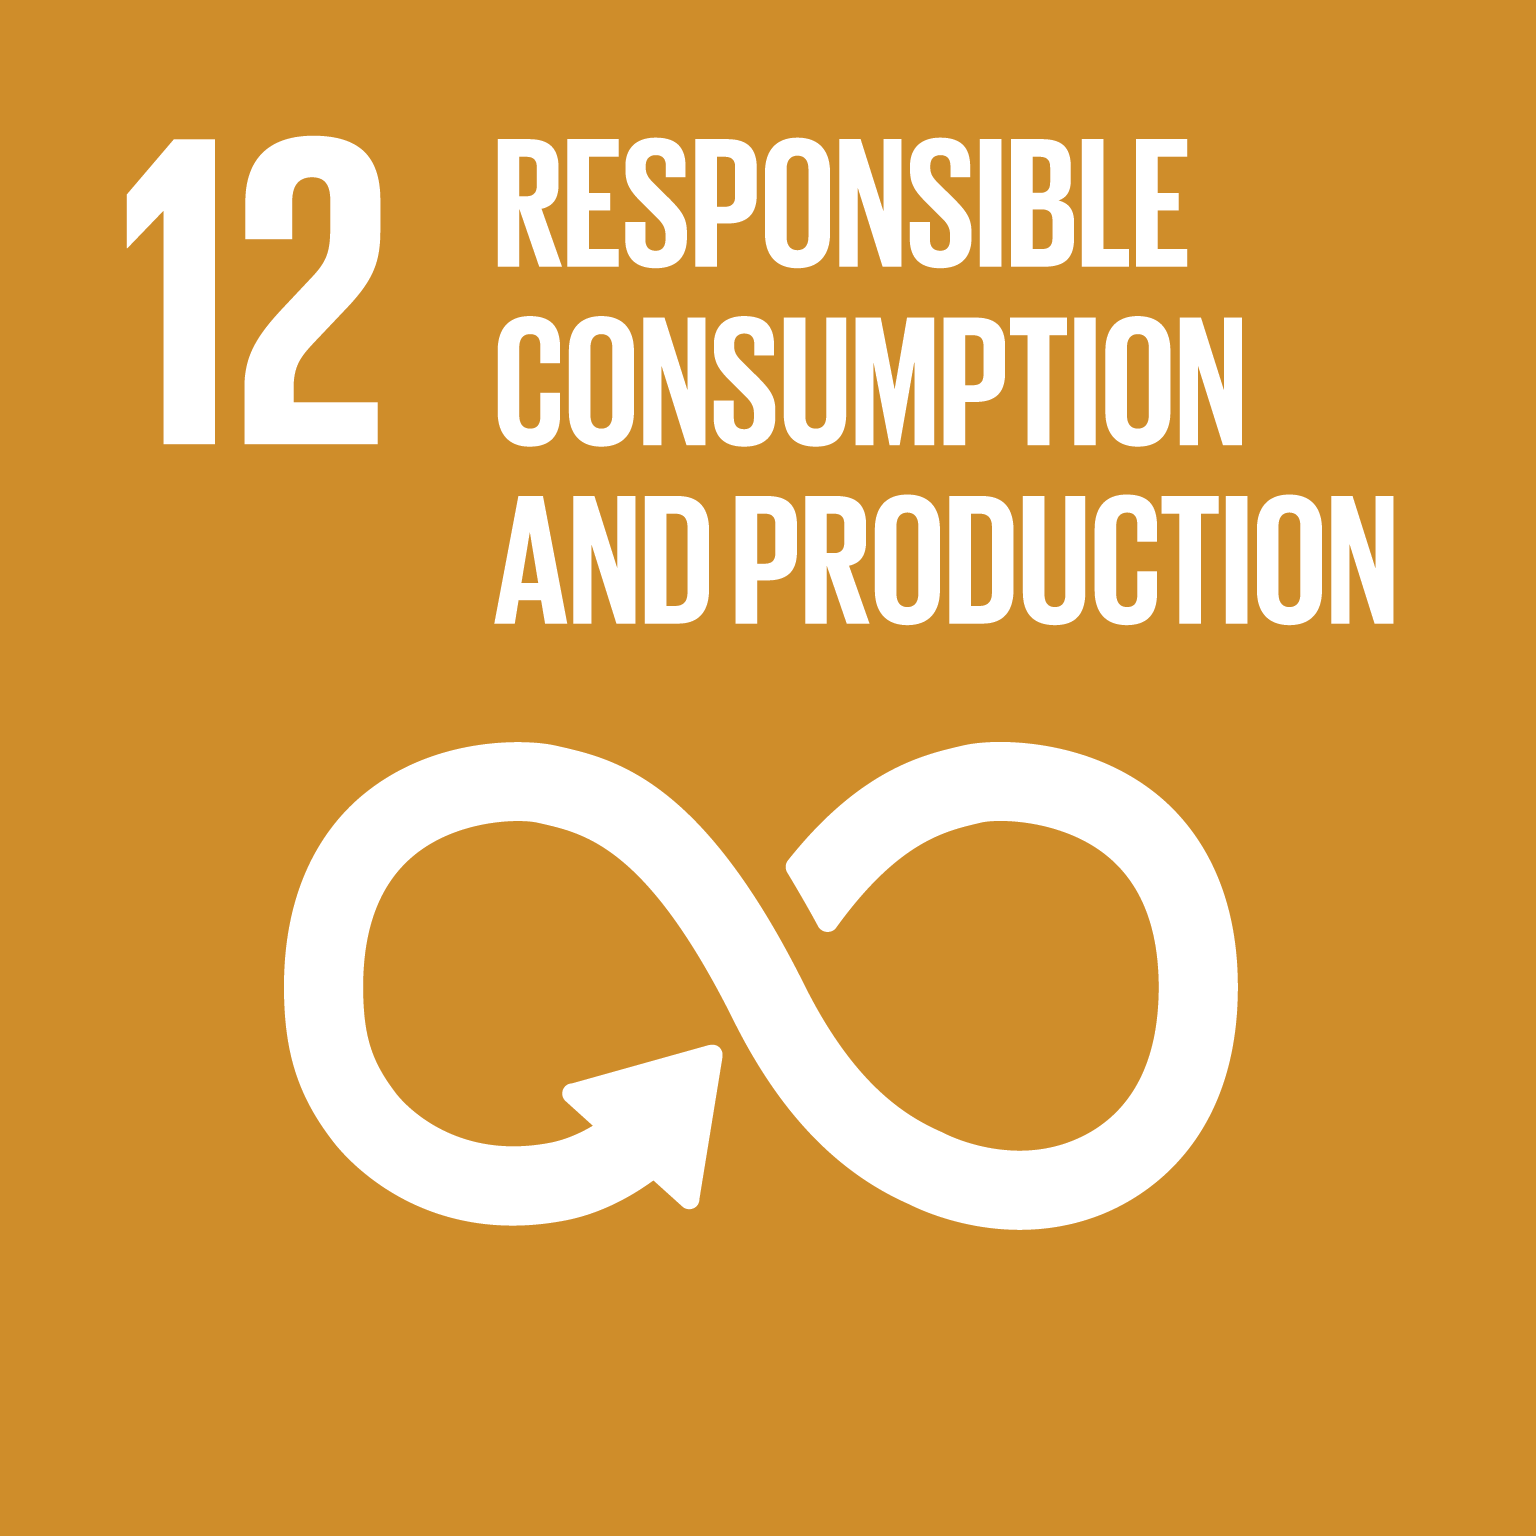 responsible consumption and production logo